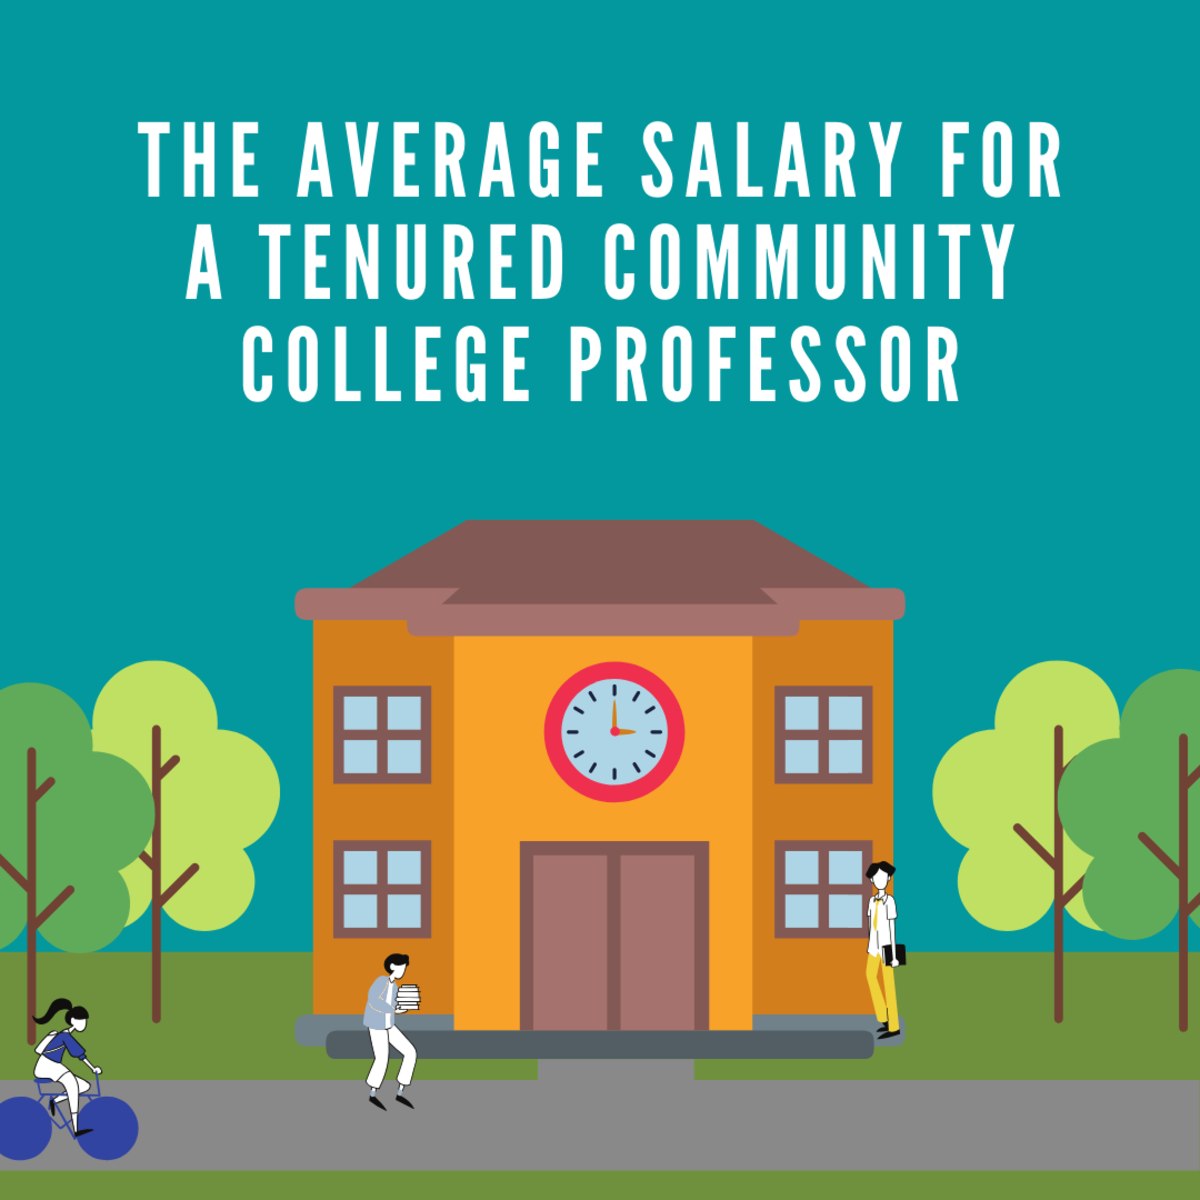 Average Salary for a Tenured Community College Professor